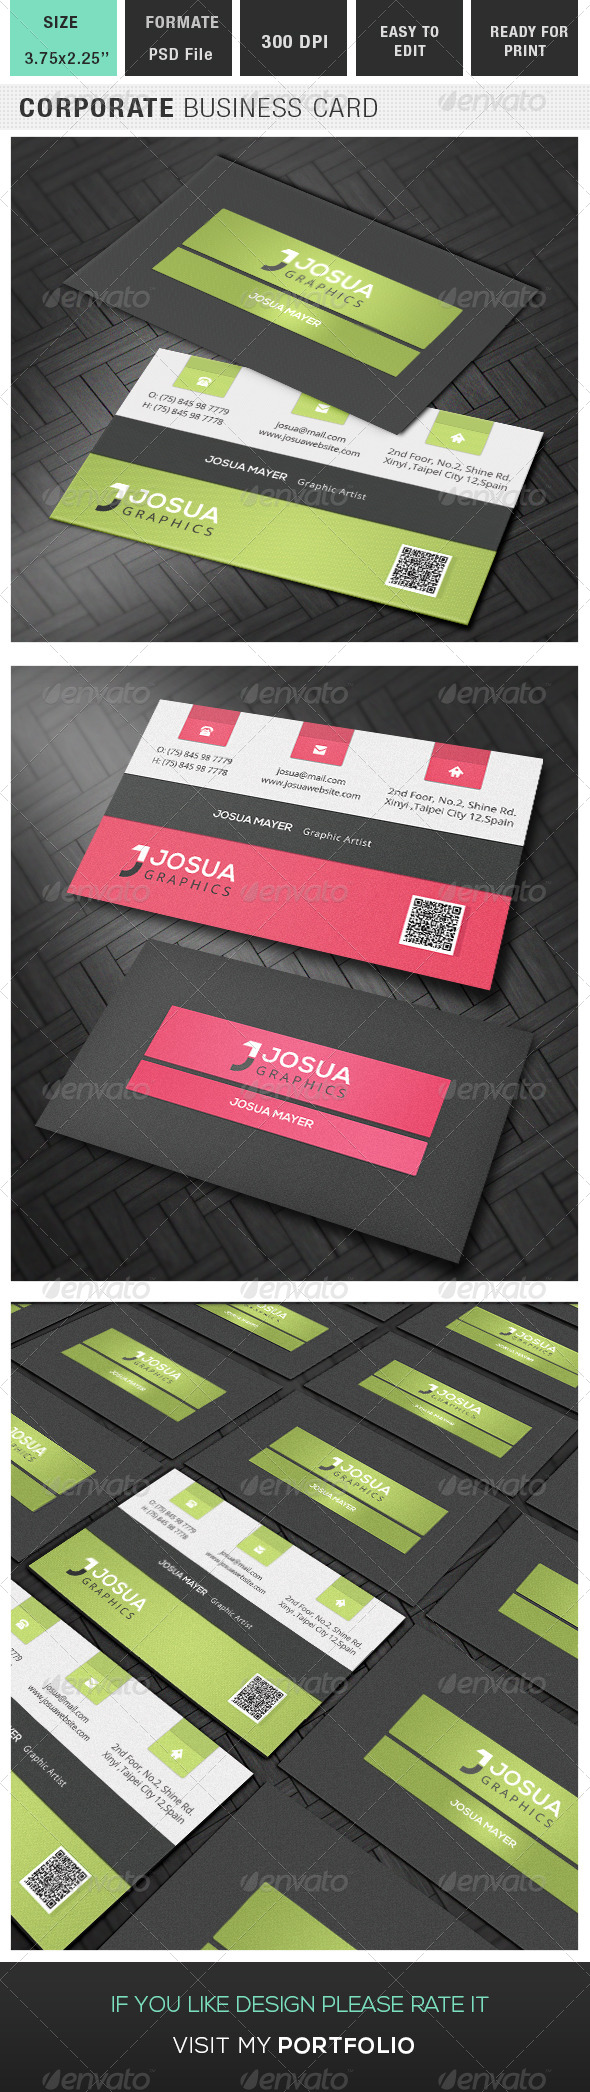 GraphicRiver Corporate Business Card 7972490